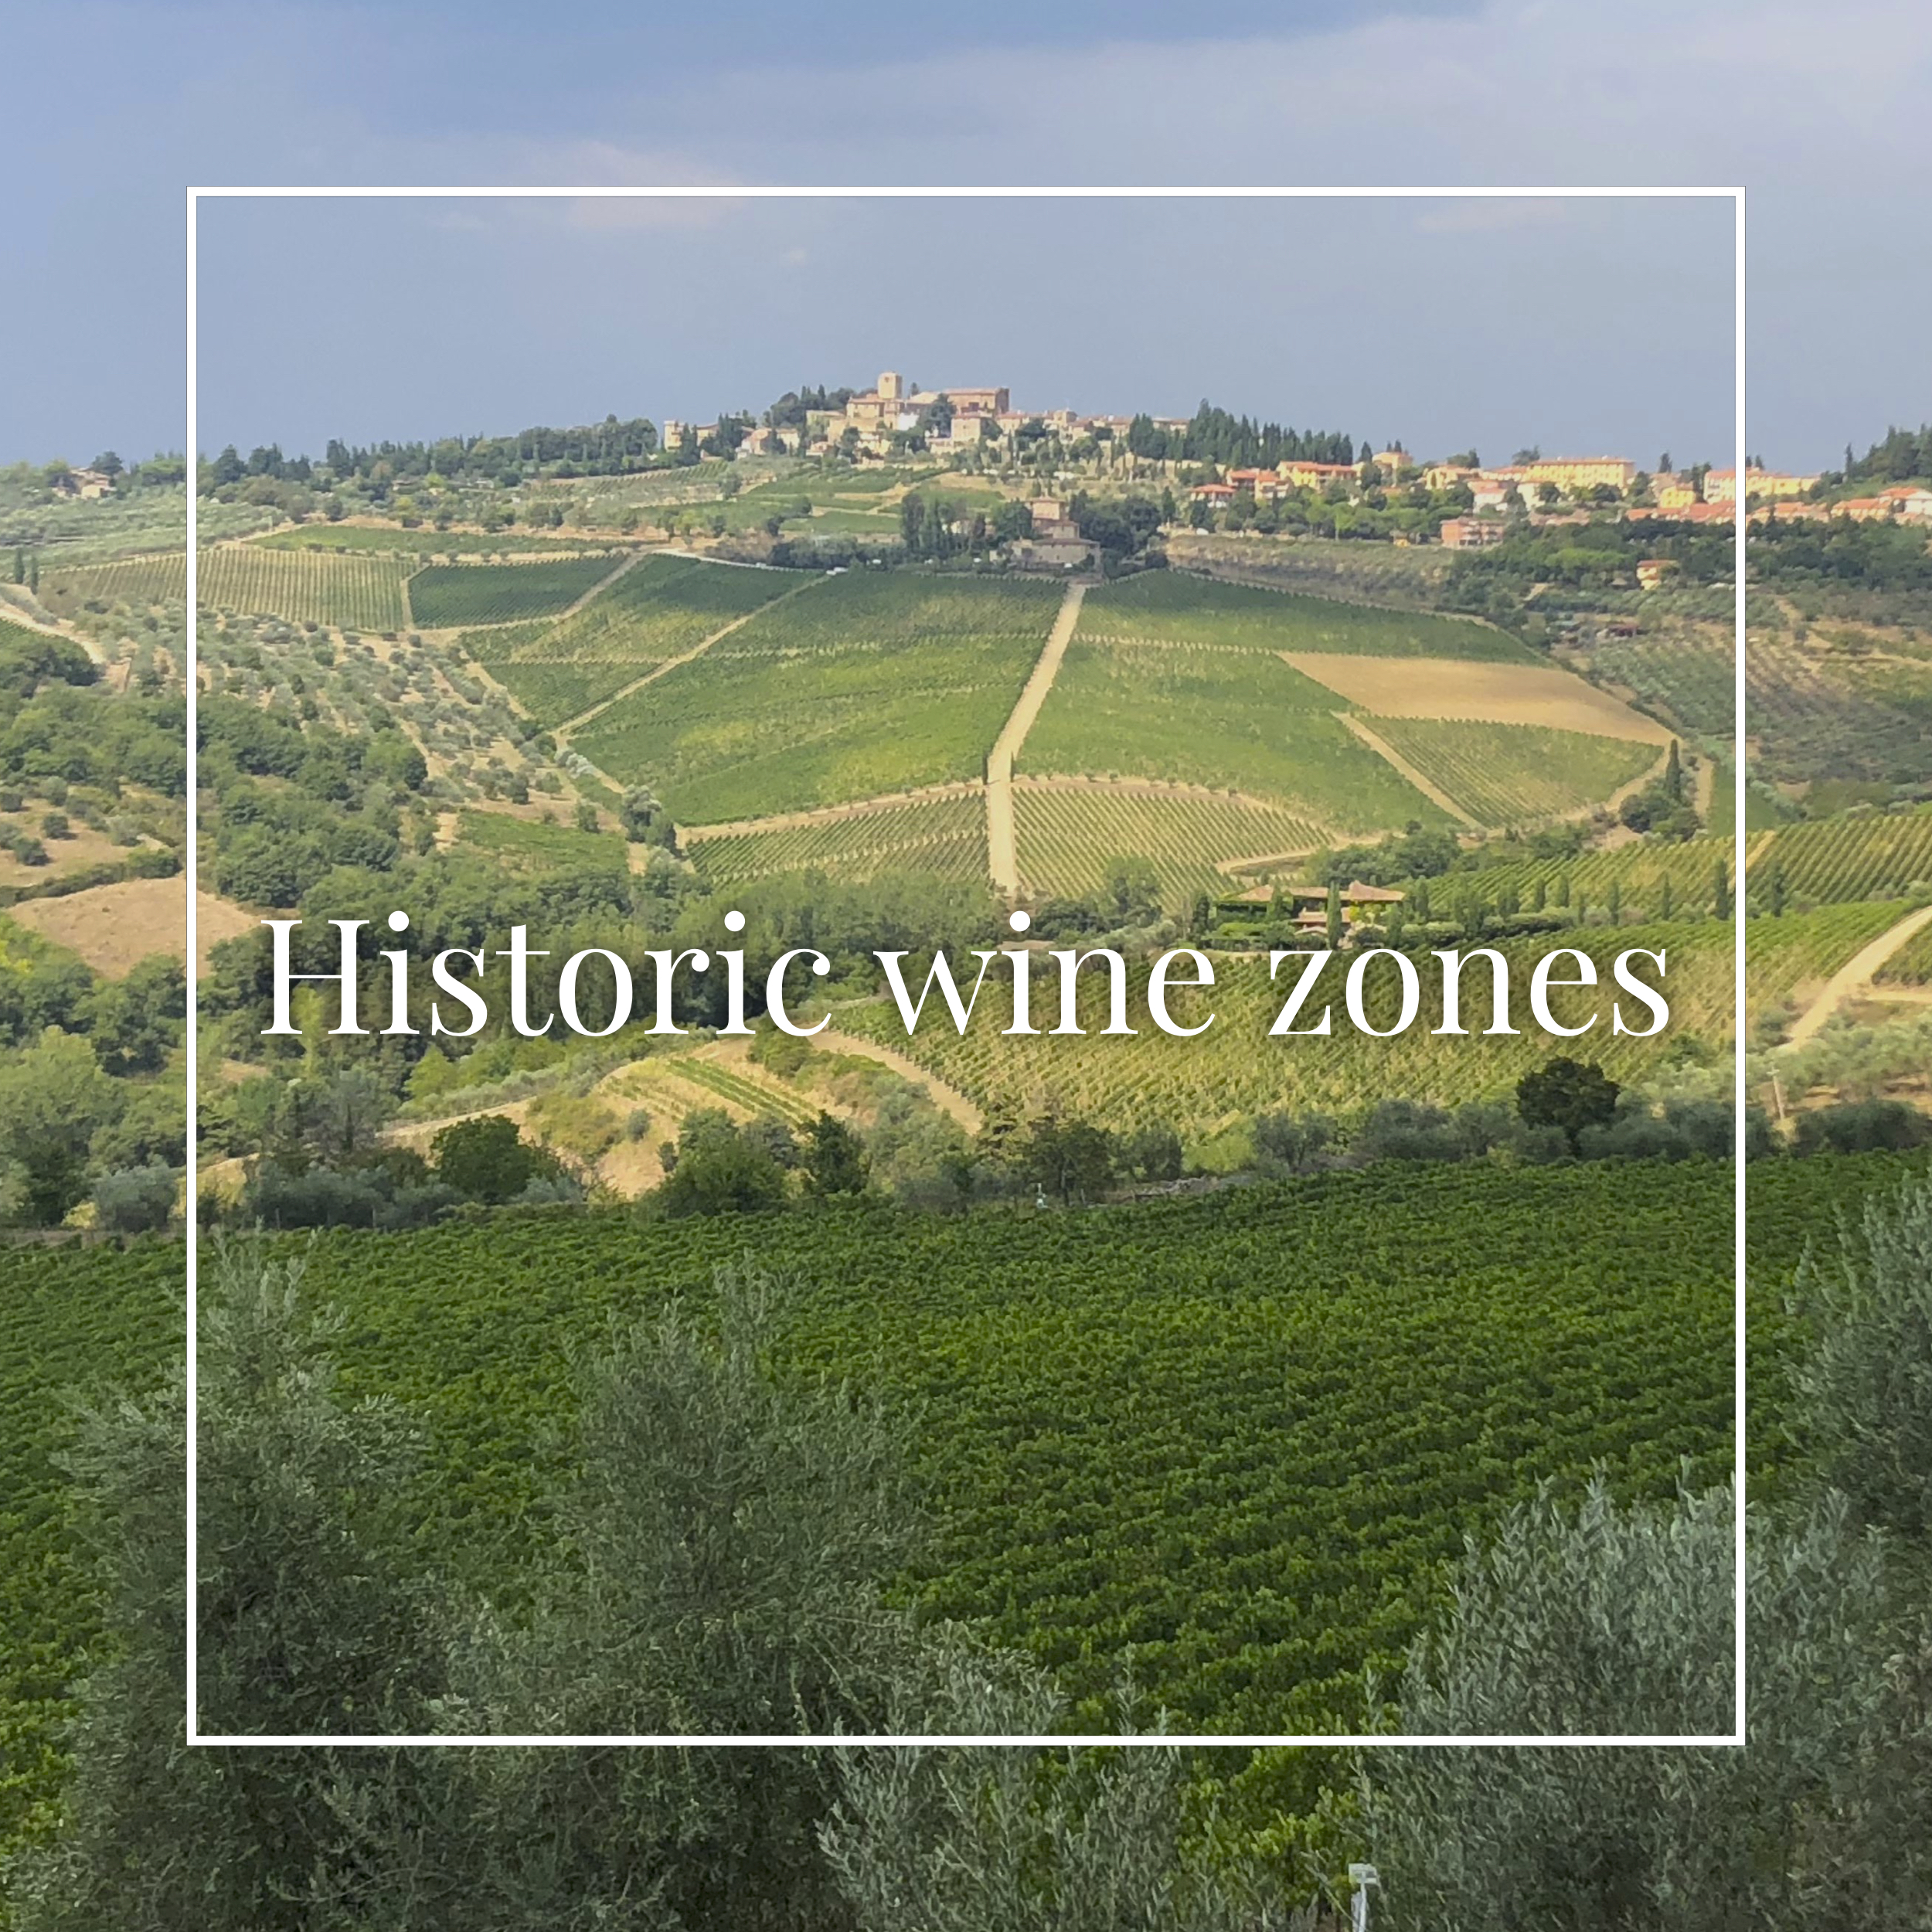 4.  While working with wine regions with fascinating pasts, we love digging deep into history. As the Terrestoria portfolio gradually grows, this trend will develop further. Though headquartered in Salt Lake City, Terrestoria operates year-round from satellite offices in Milan, making close collaboration with European suppliers the cornerstone of our unique business model.